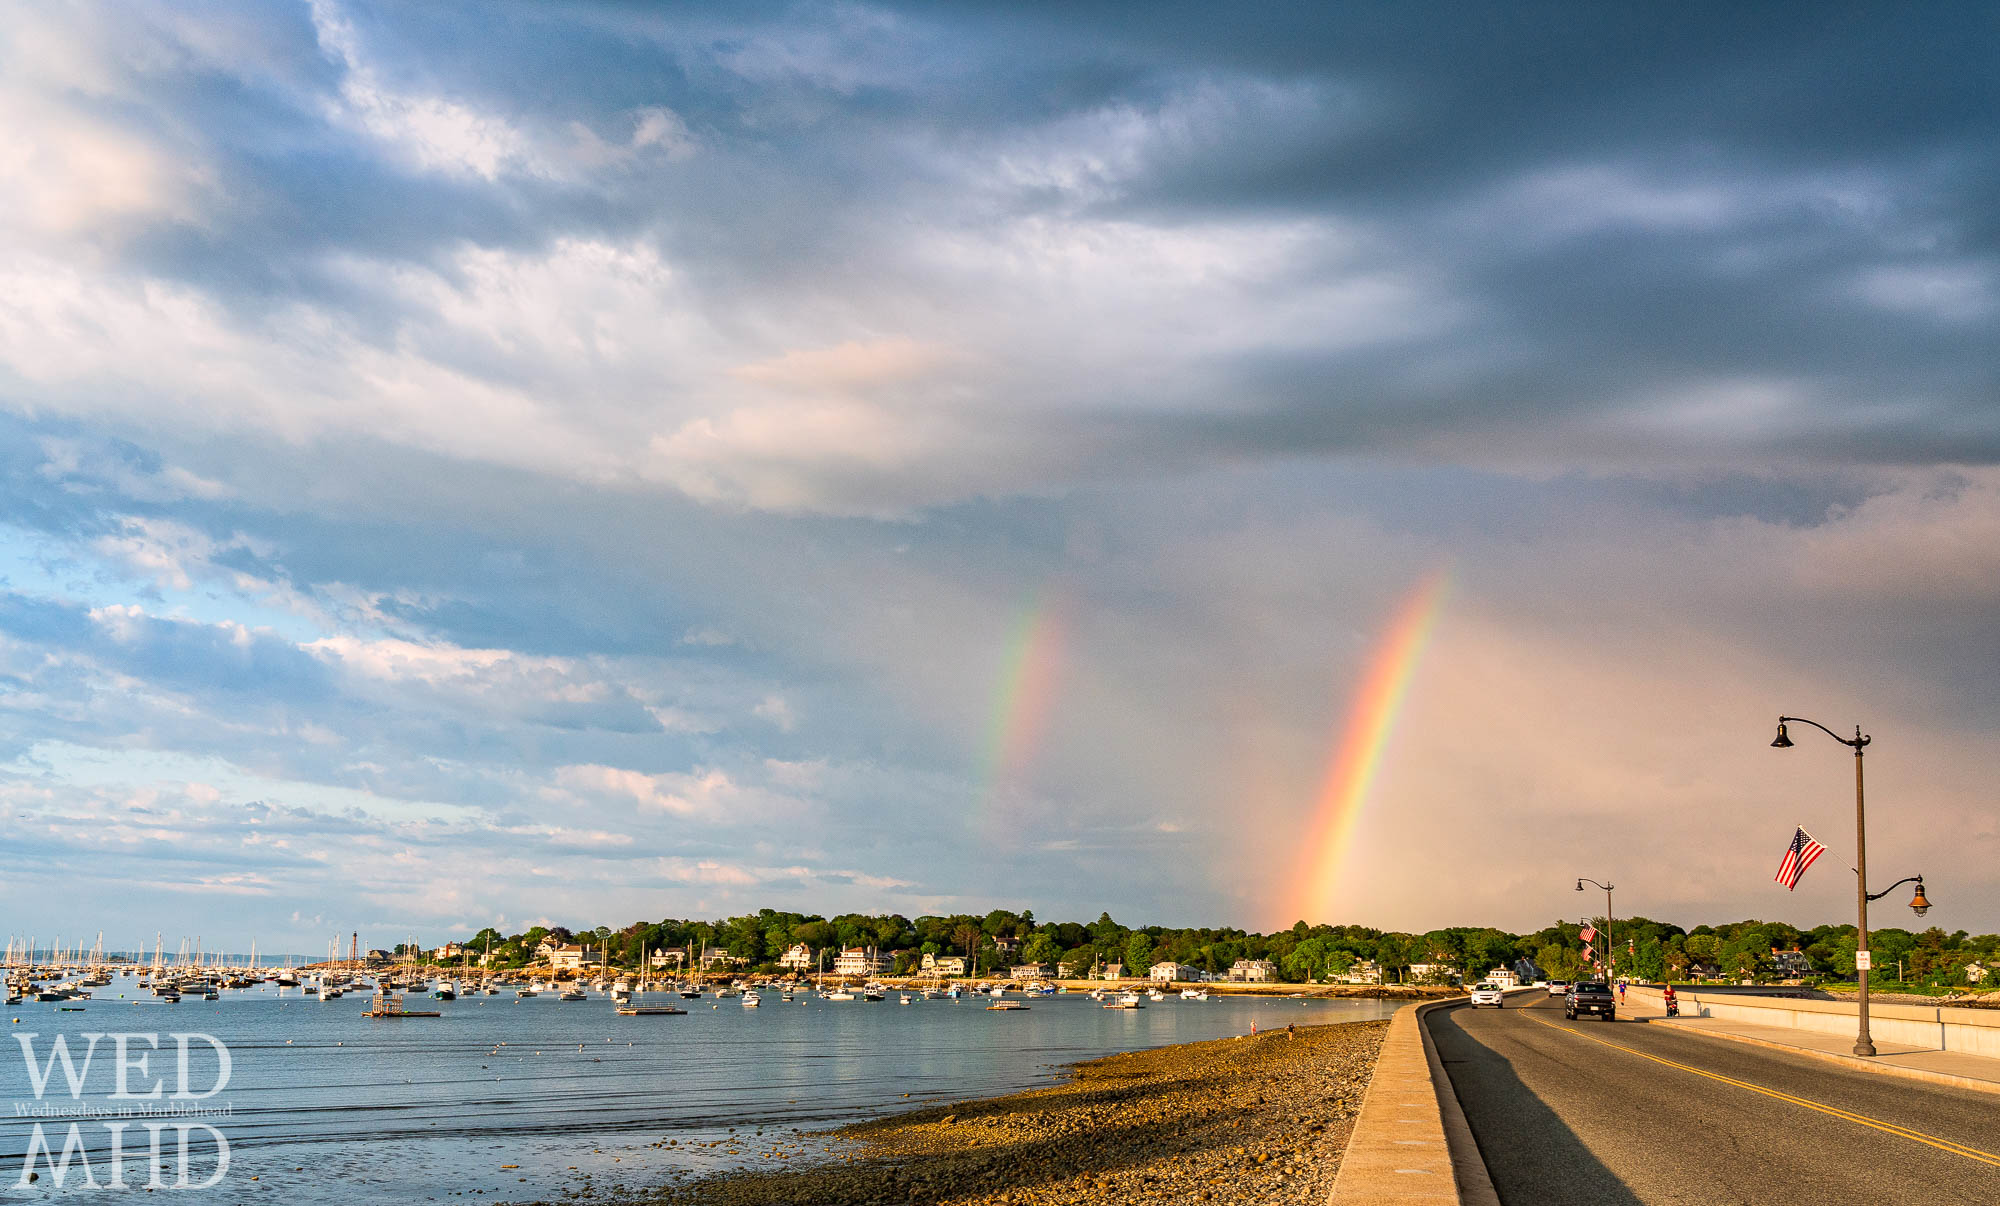 Double summer rainbows shine over the causeway with lamp posts adorned with flags for the upcoming Independence Day